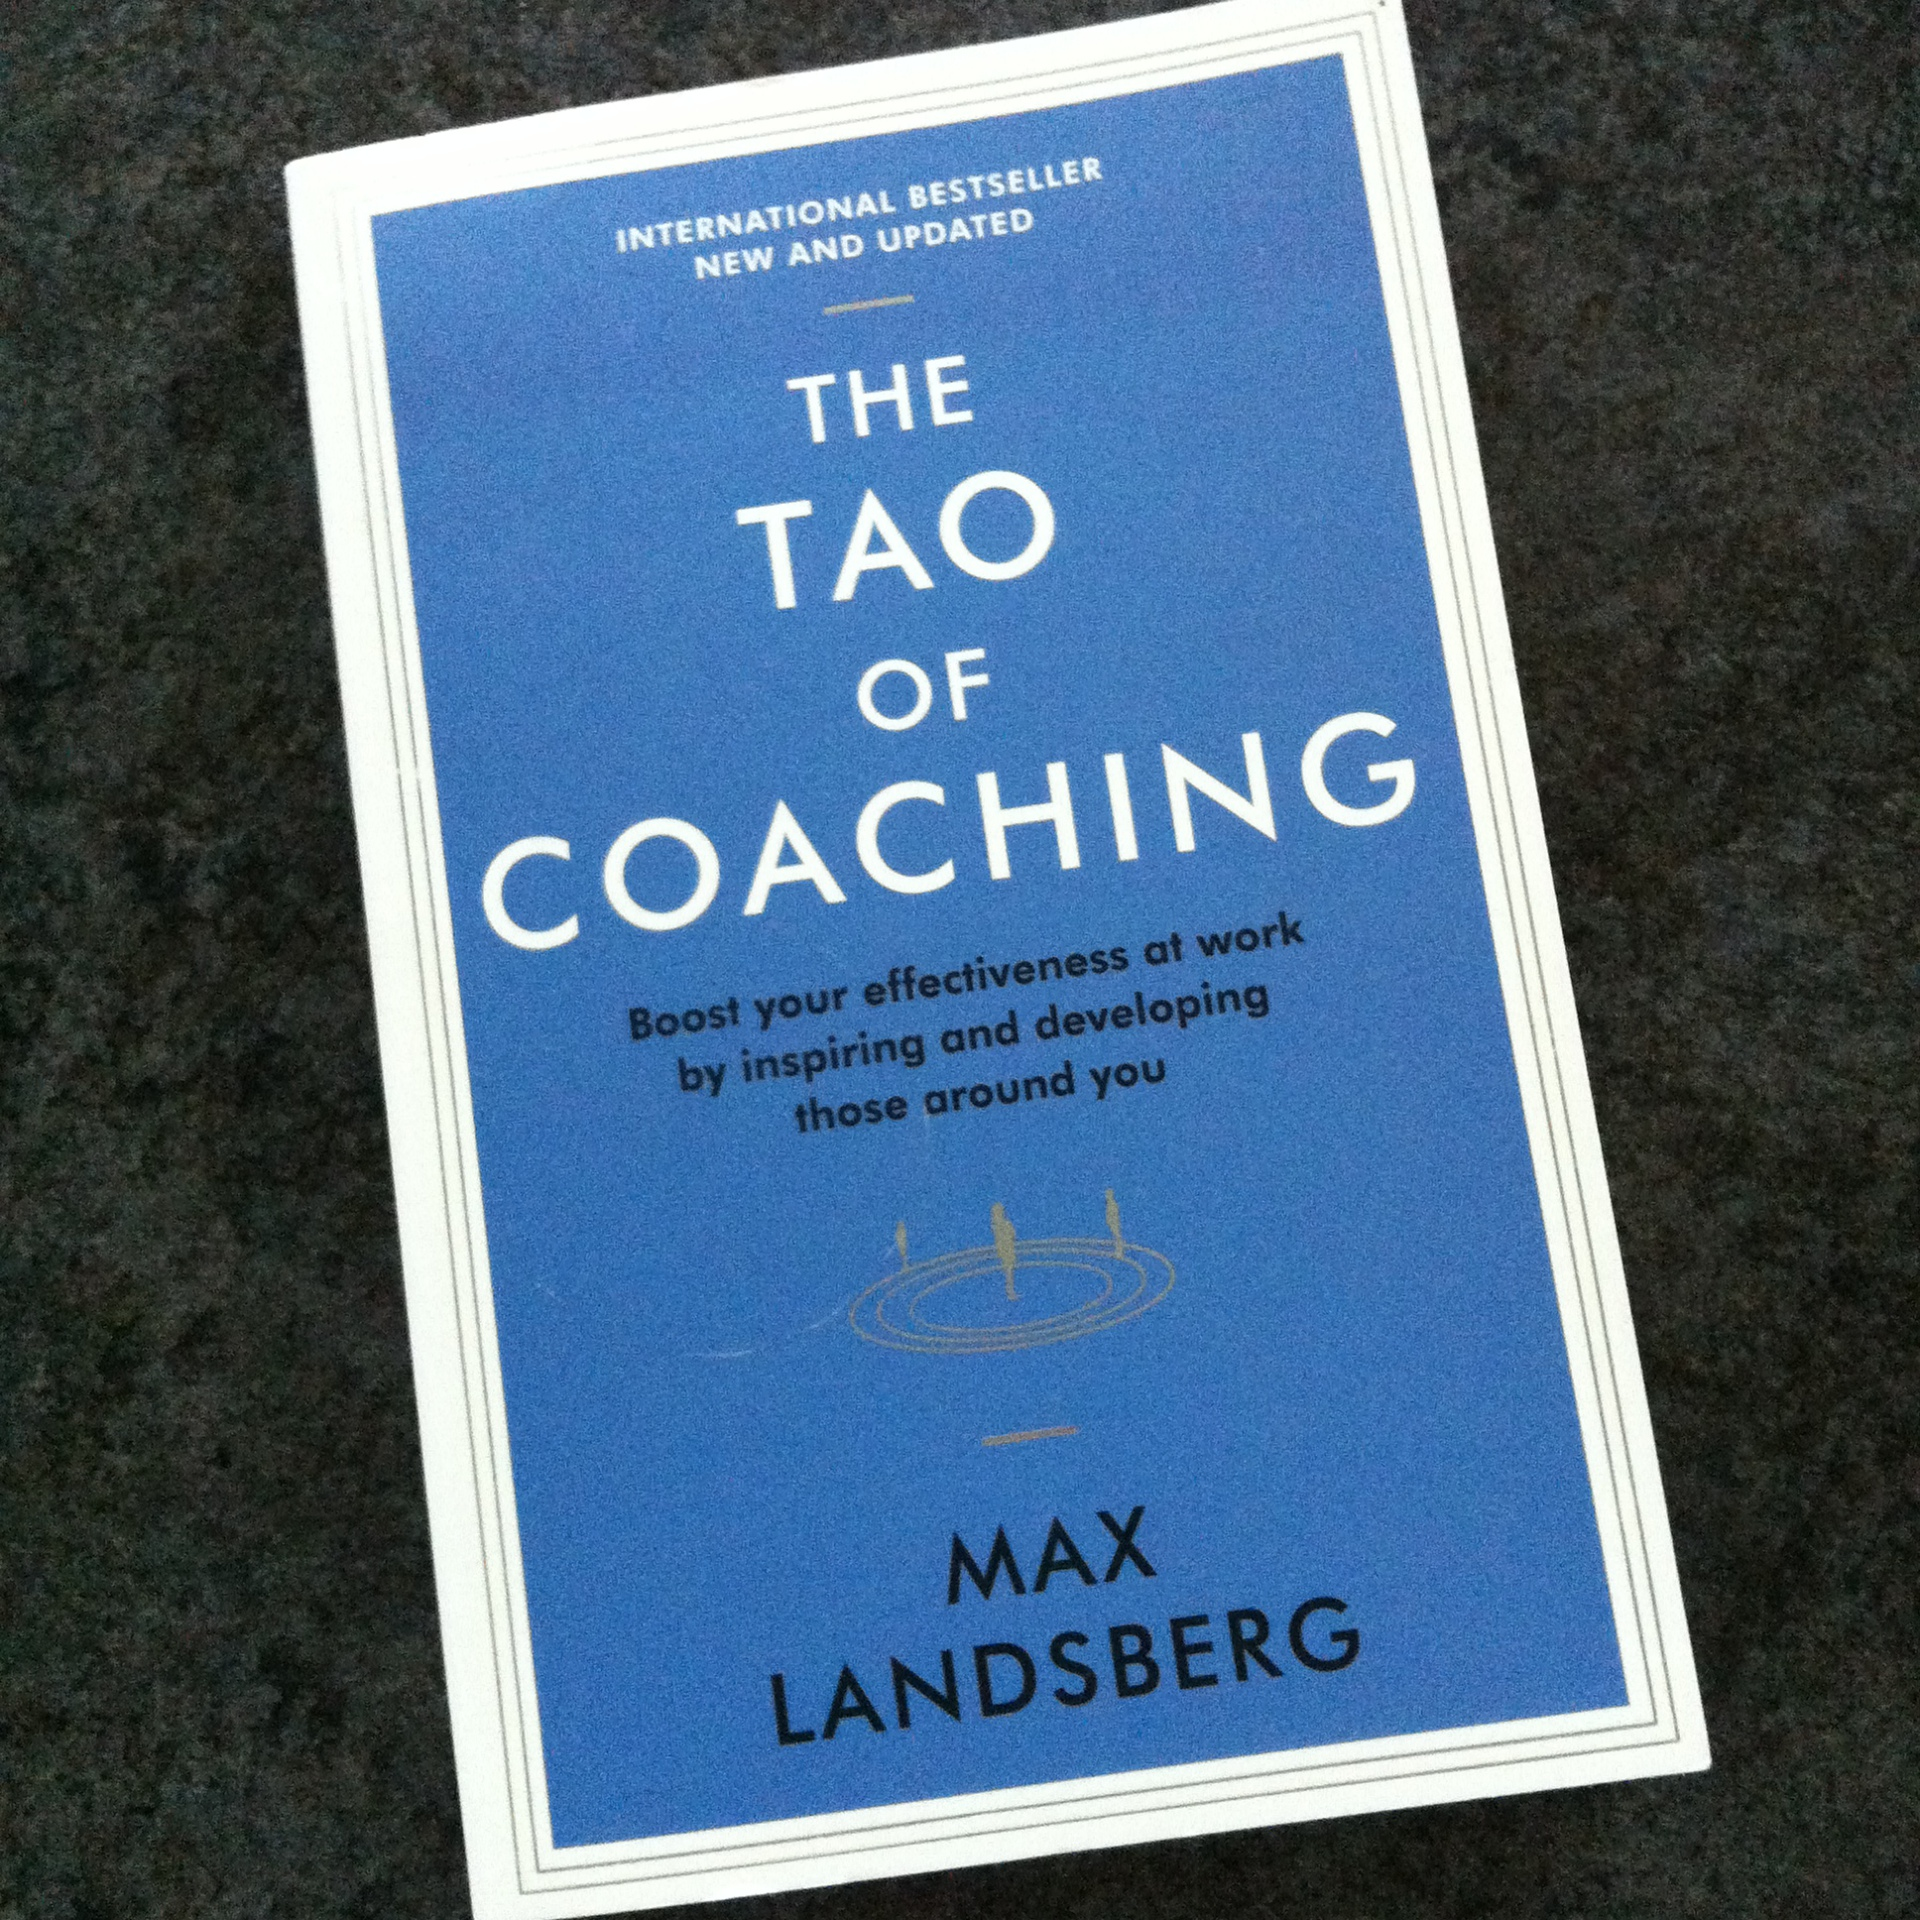 BOOK REVIEW: The Tao of Coaching